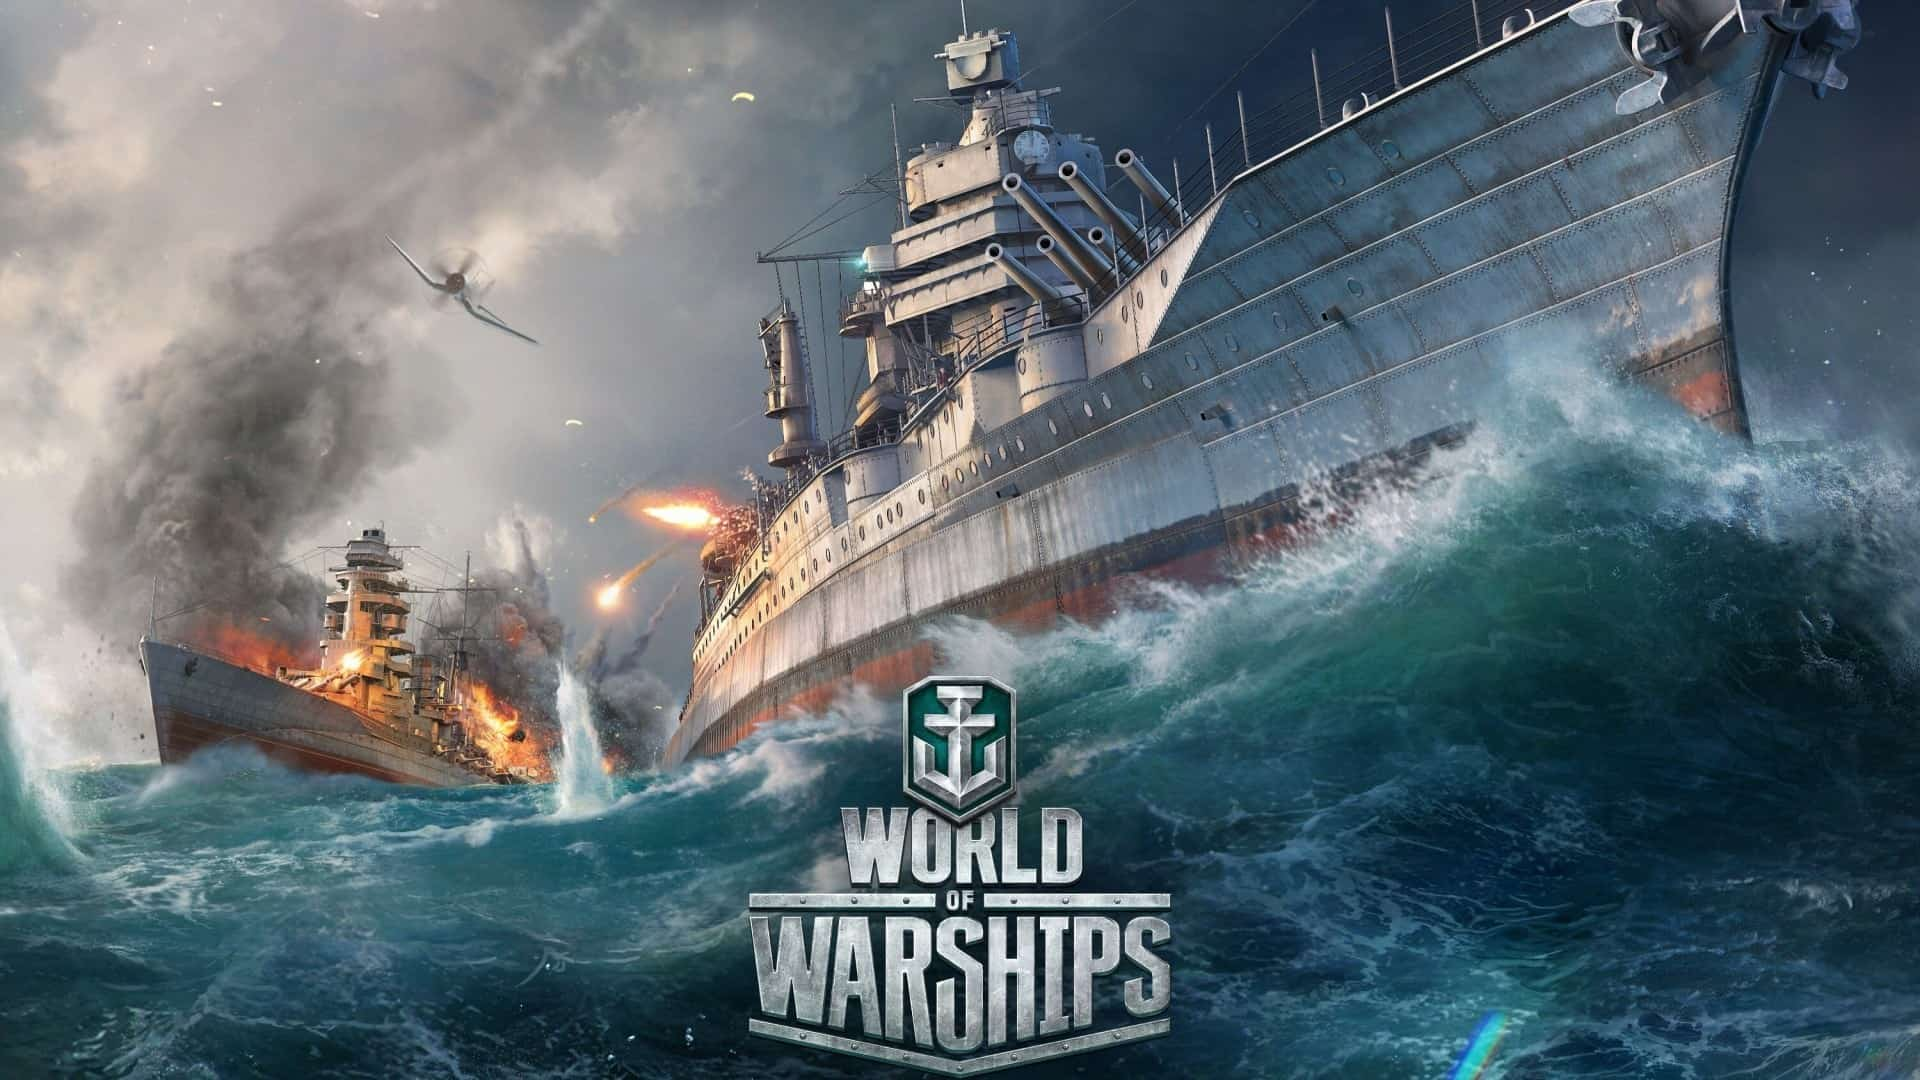 Soviet Battleships Sighted! A New Ship Line Enters World of Warships